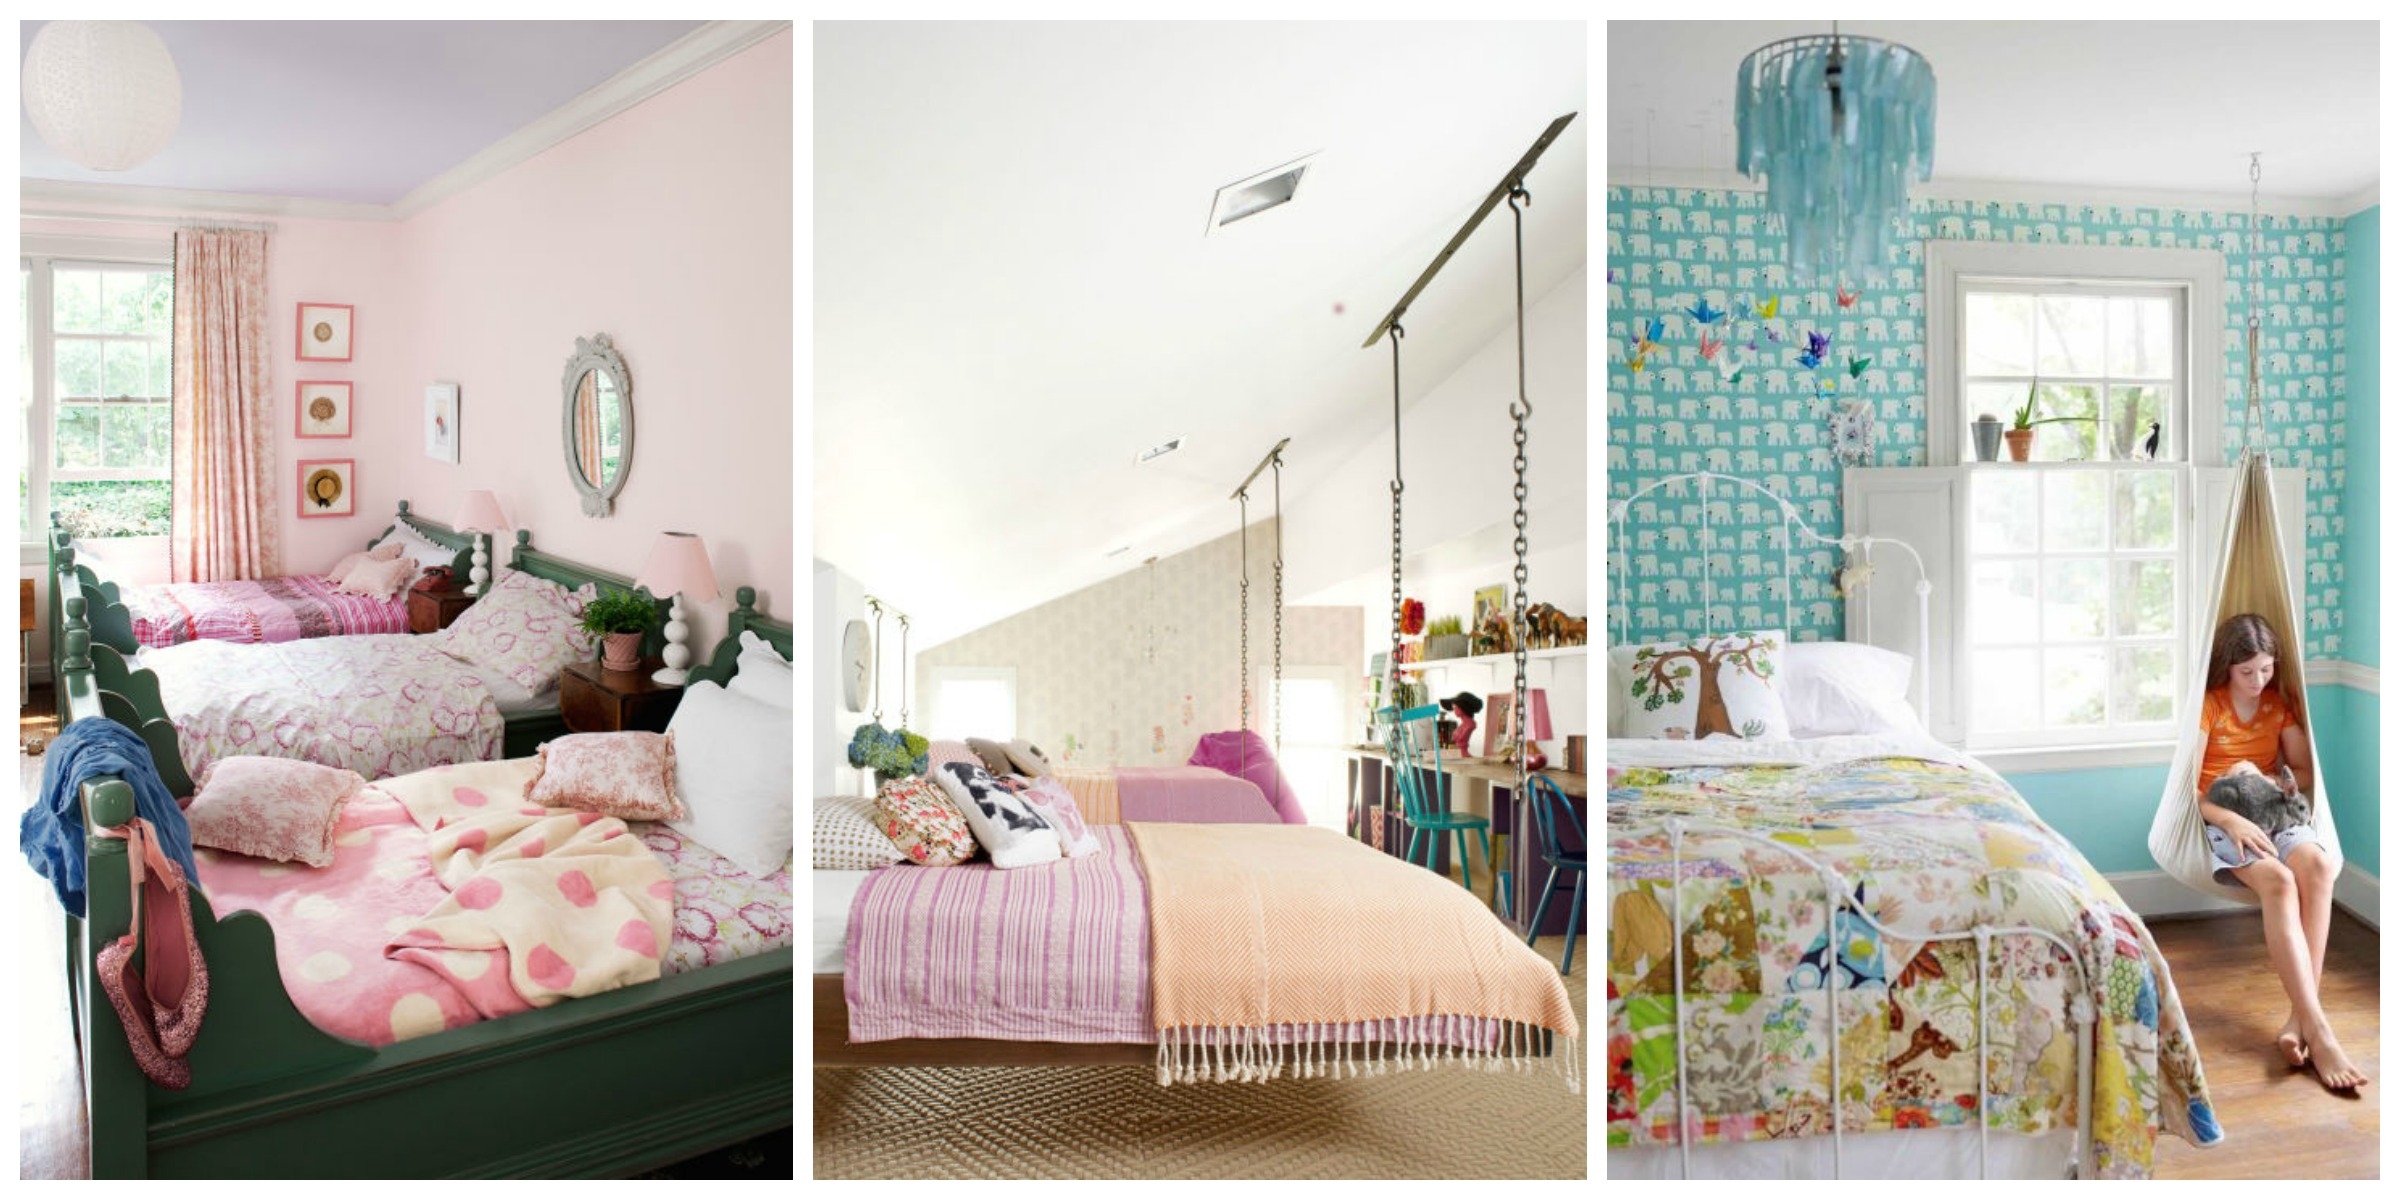 Room Decorations For Girl 12 Fun Girl 39s Bedroom Decor Ideas Cute Room Decorating